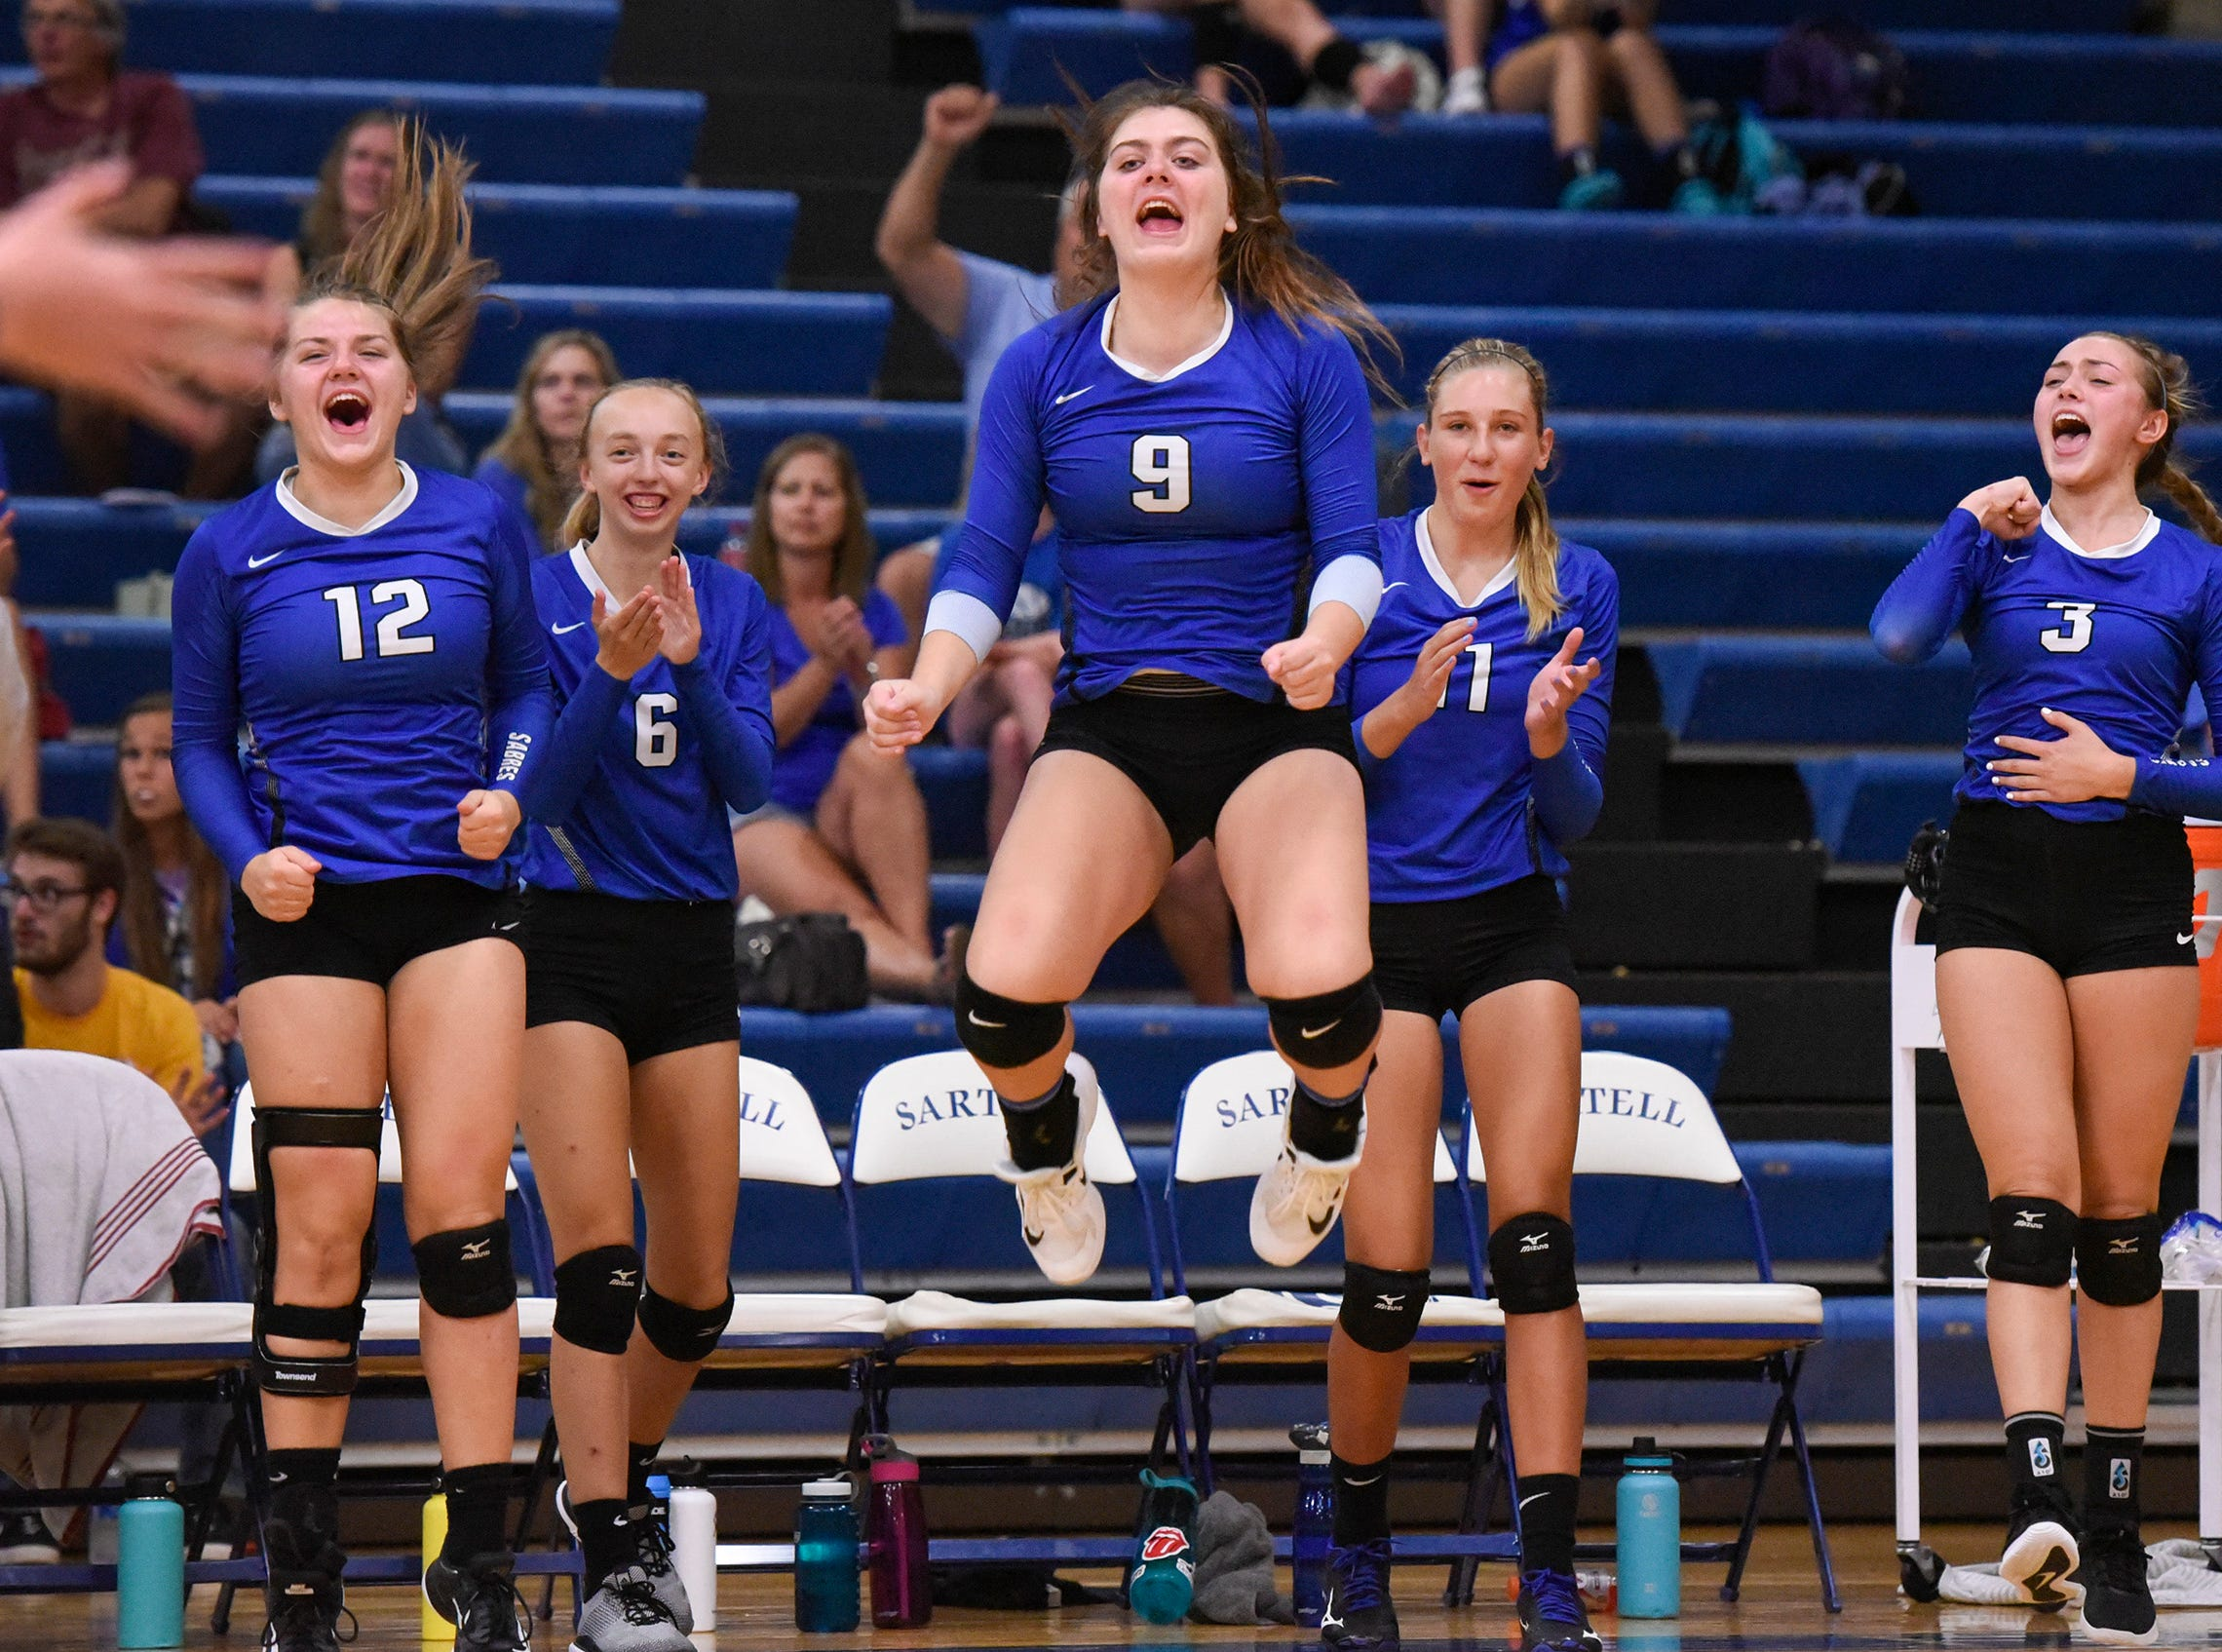 Sartell players come off the bench in the team's win over Tech Tuesday, Sept. 11, in Sartell.